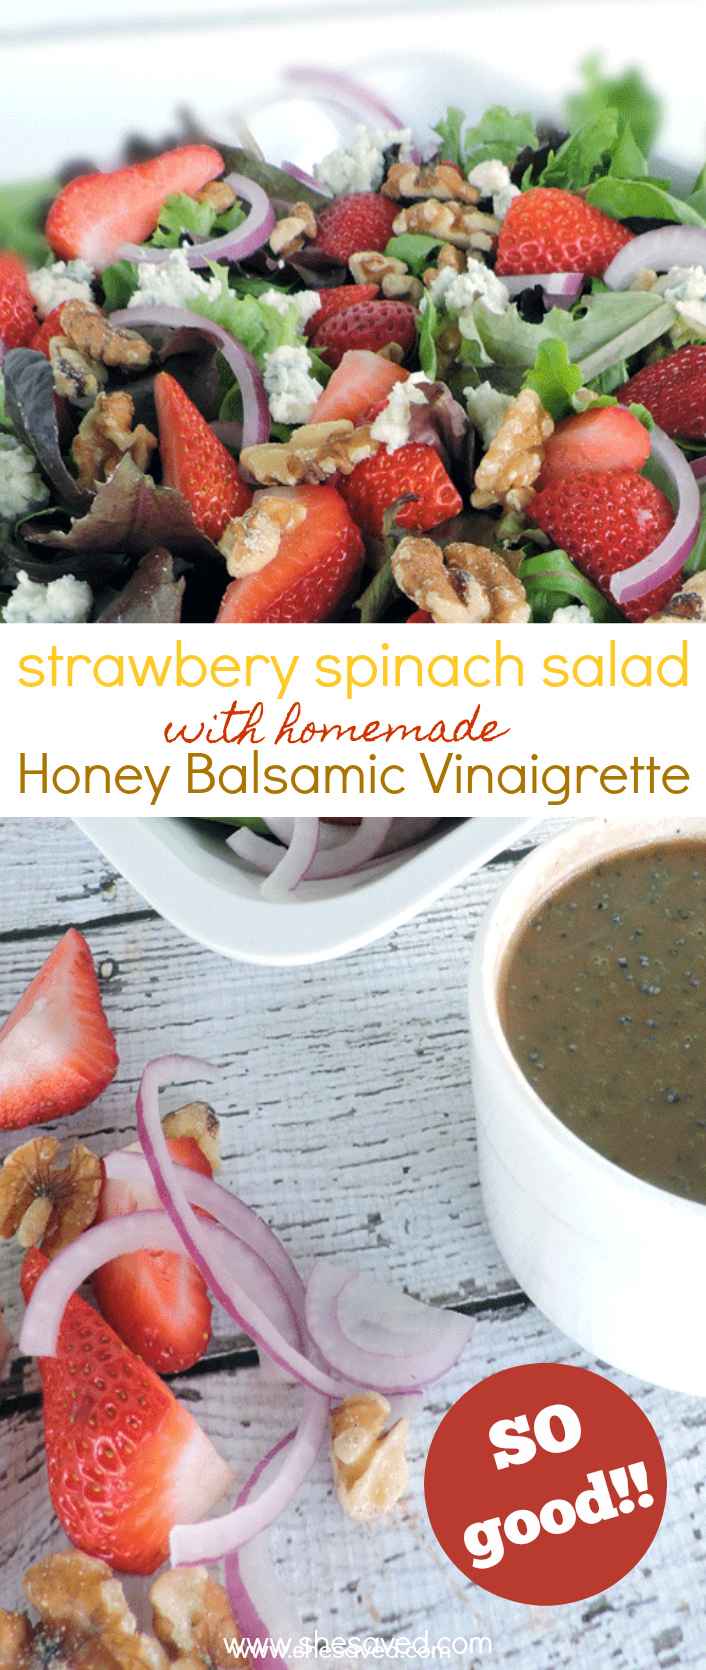 strawberry spinach salad with homemade honey balsamic vinaigrette recipe